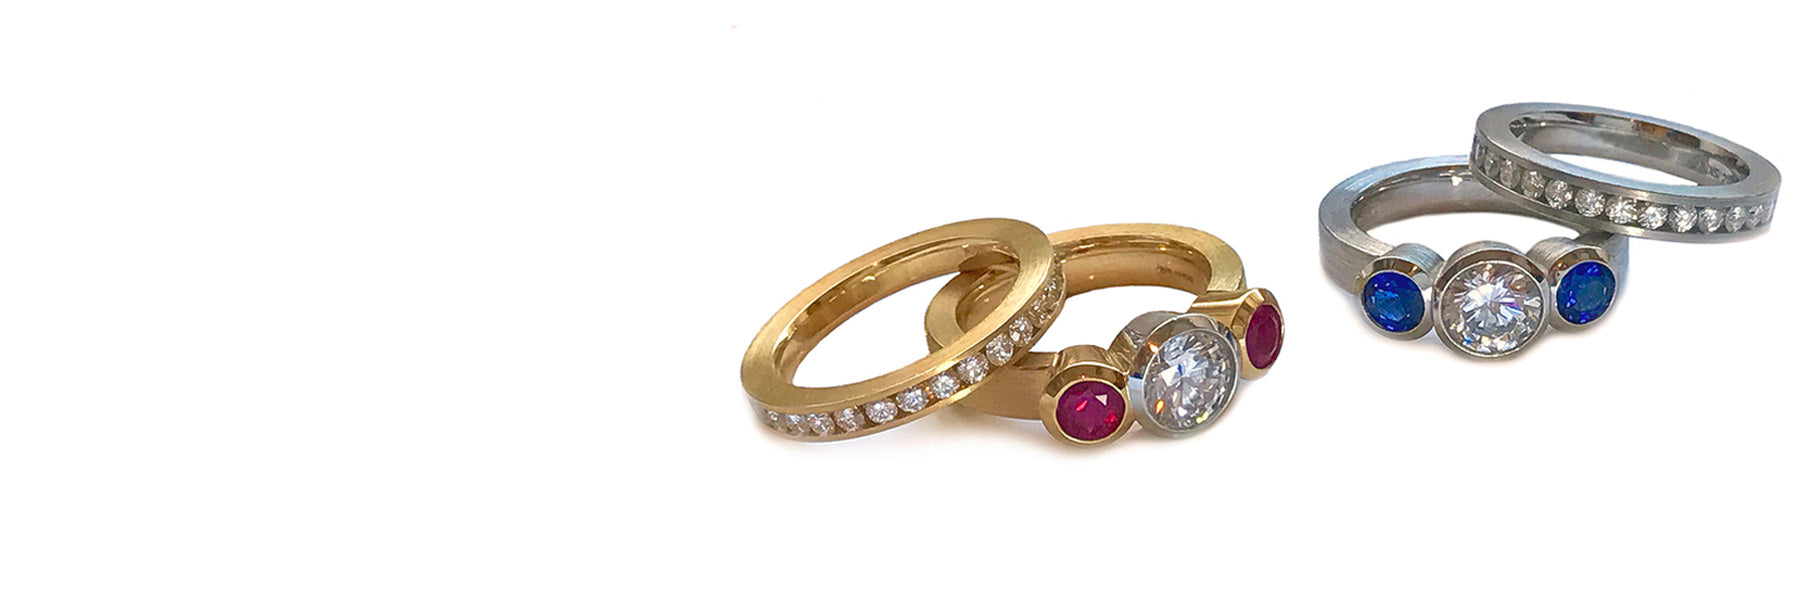 3 stone modern engagement rings with channel set wedding bands in 18k with rubies or Pt. with blue sapphires, both with diamonds.